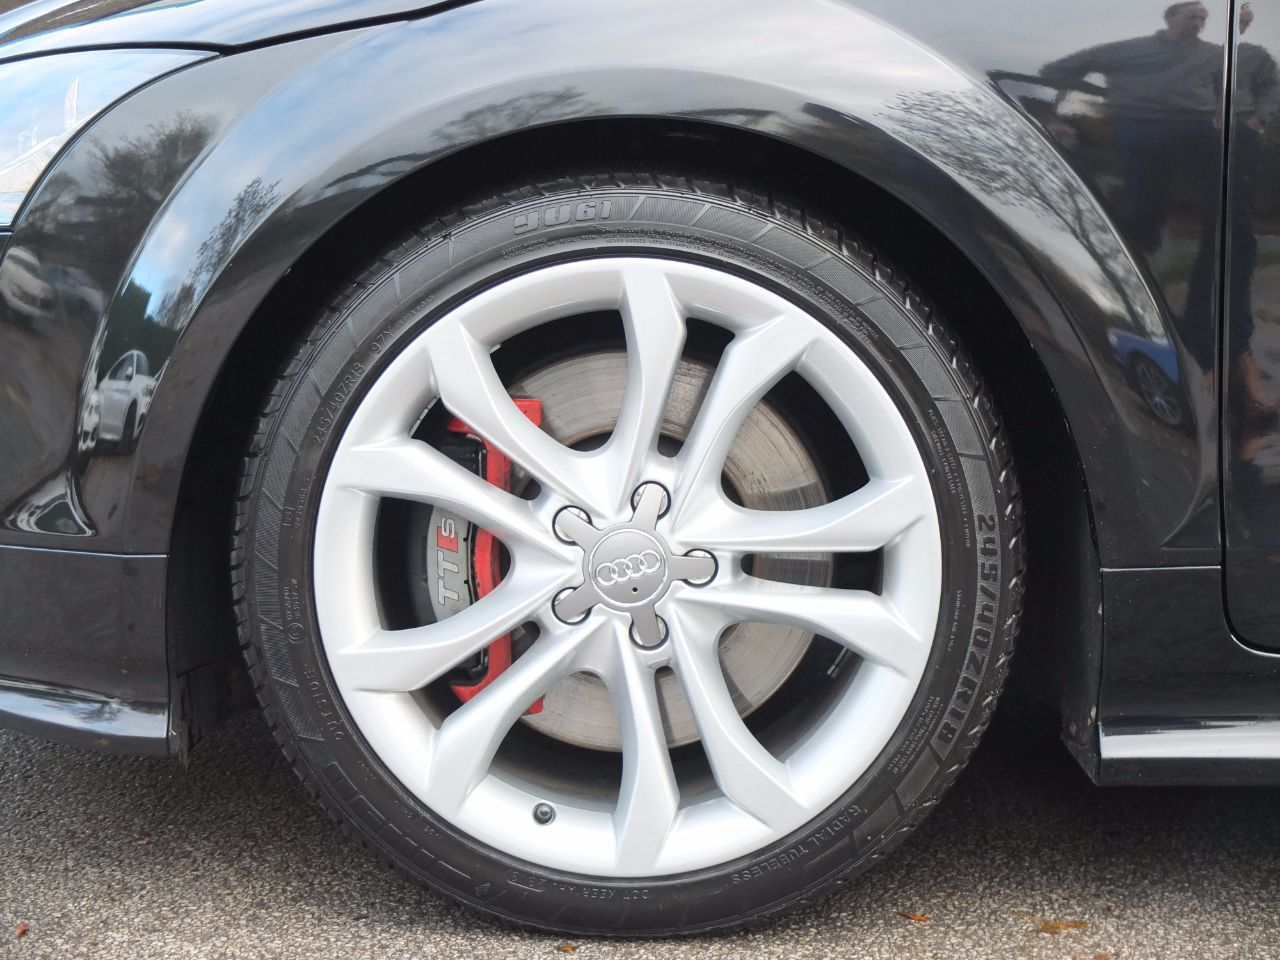 Audi TT TTS Roadster 2.0T FSI quattro S Tronic 272ps Convertible Petrol Phantom Black Metallic